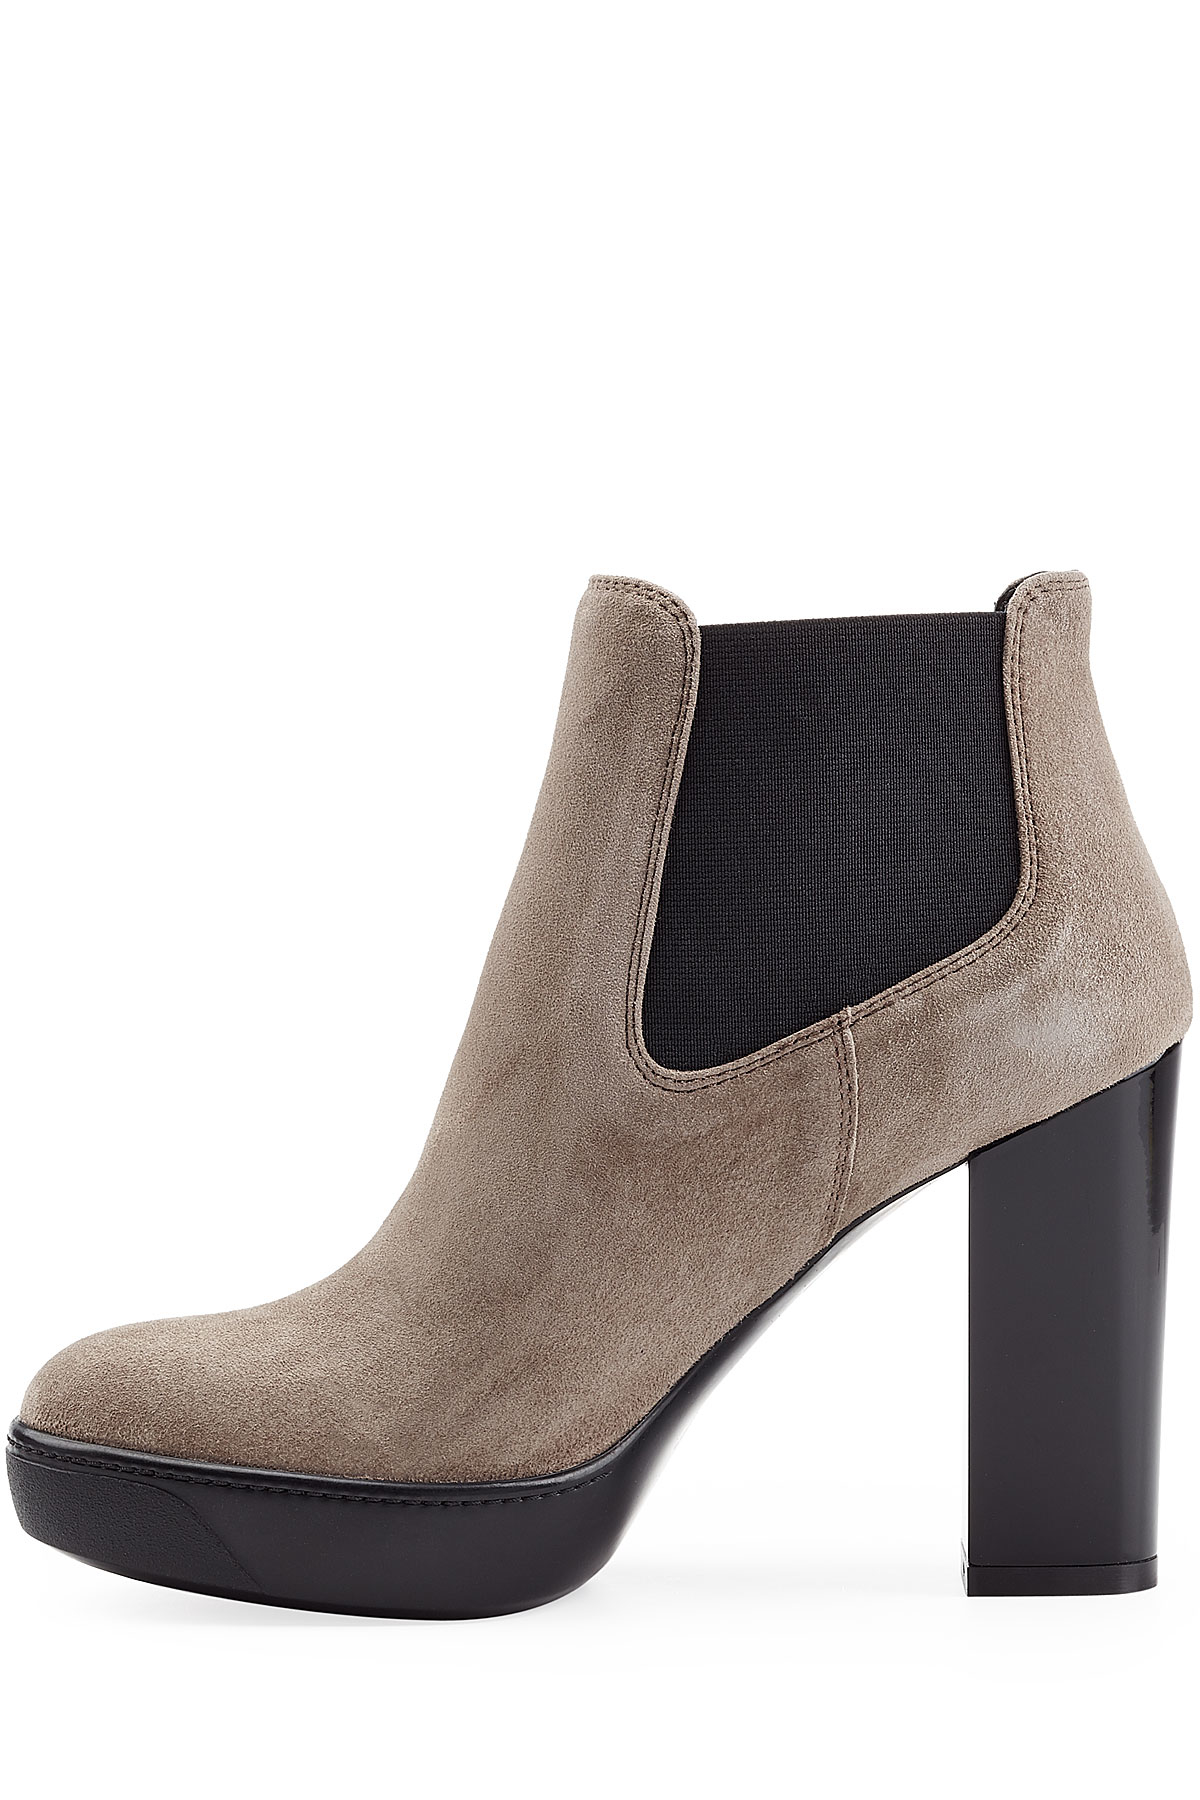 suede platform ankle boots grey in gray lyst